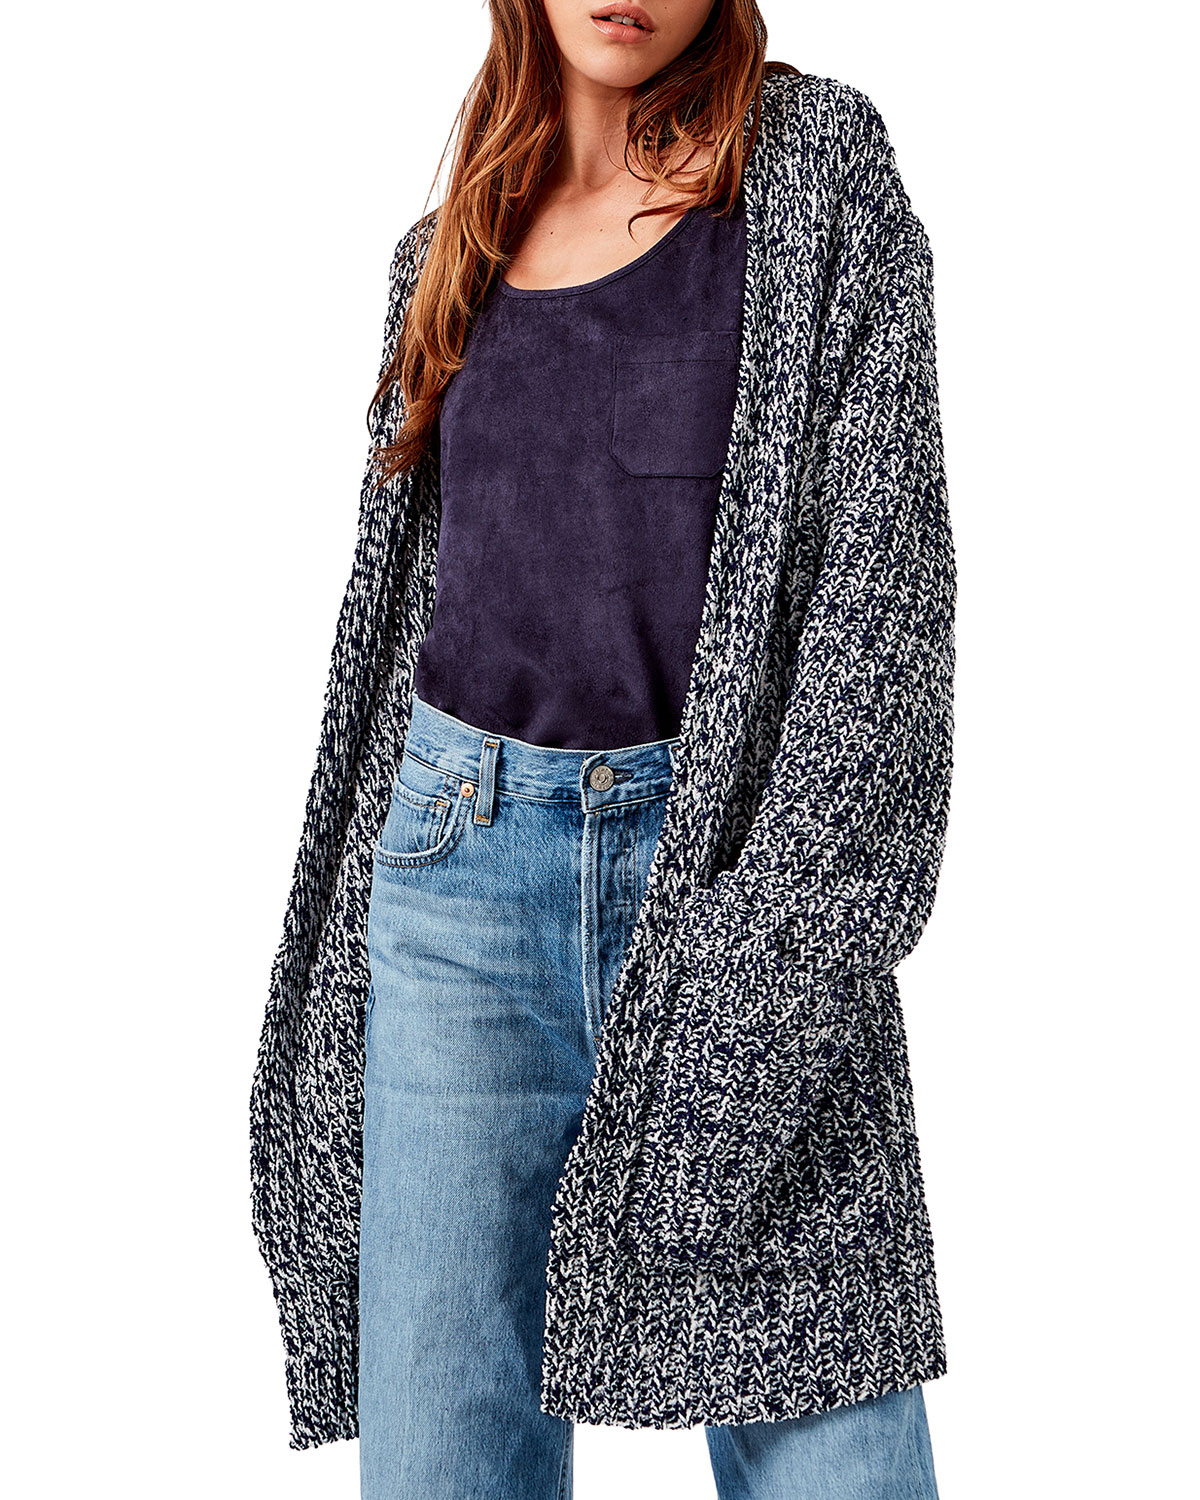 Frosting Mid-Length Chenille Cardigan